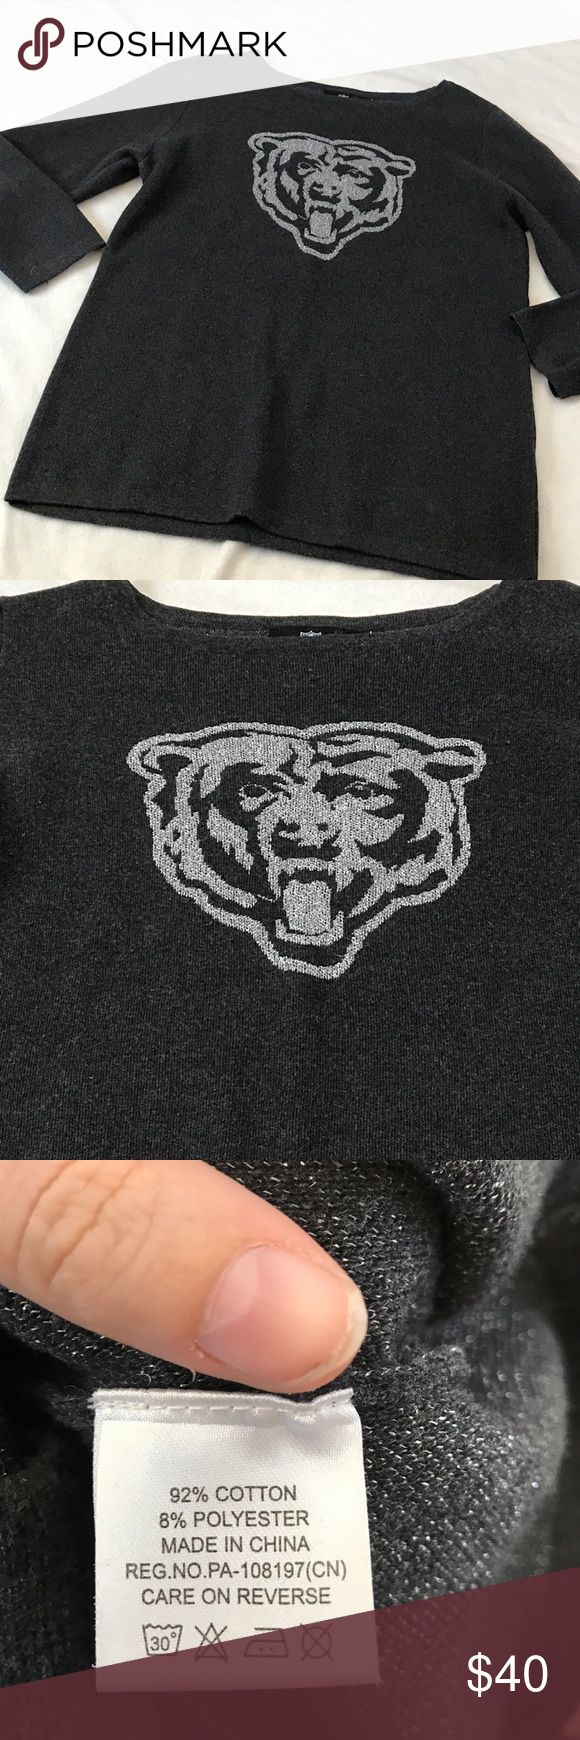 """NFL Chicago Bears Shimmer Logo Sweatshirt 29.5"""" length 21.5"""" armpit to armpit. Has dark gray color with a shimmer silver Bears logo on the front side. Long sleeve. Sweater like shirt. Bundle 2+ items for a discount. NFL Tops Sweatshirts & Hoodies"""